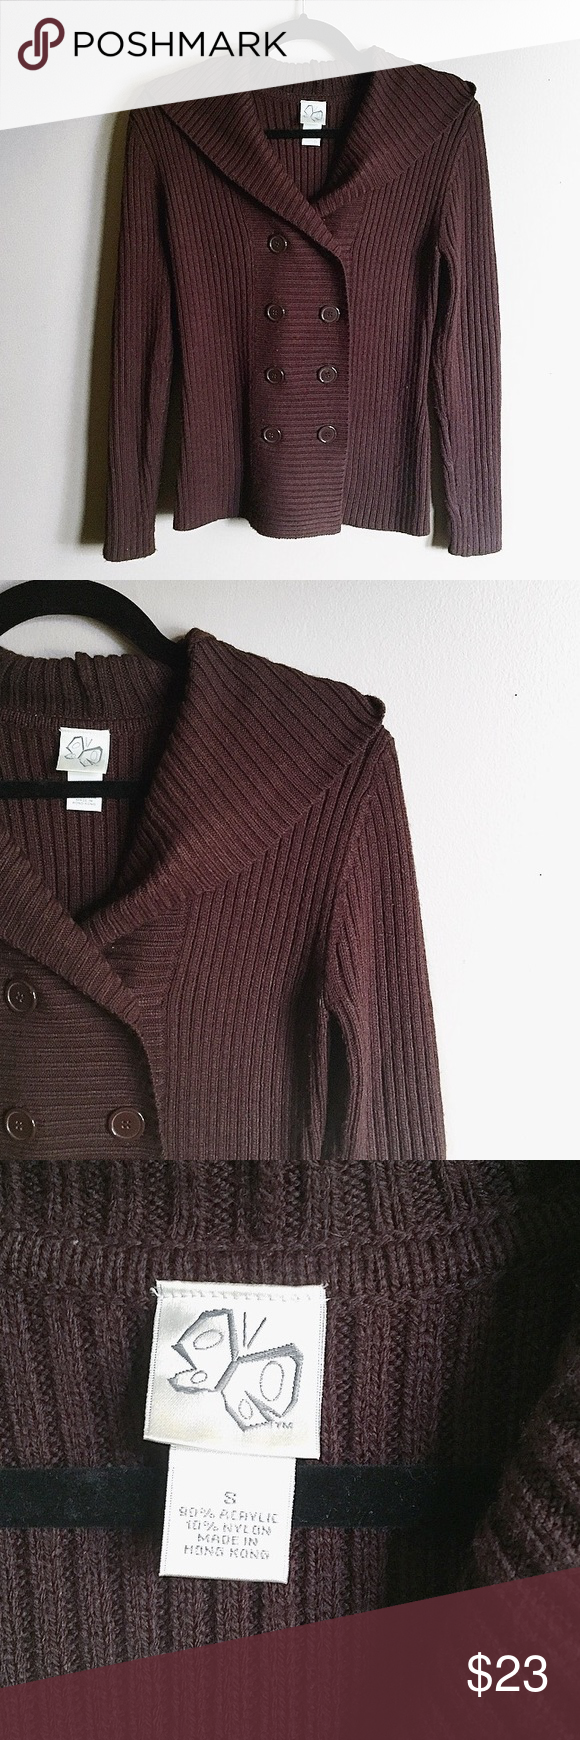 Brown cardigan A heavier brown hooded cardigan. Super cute and ...